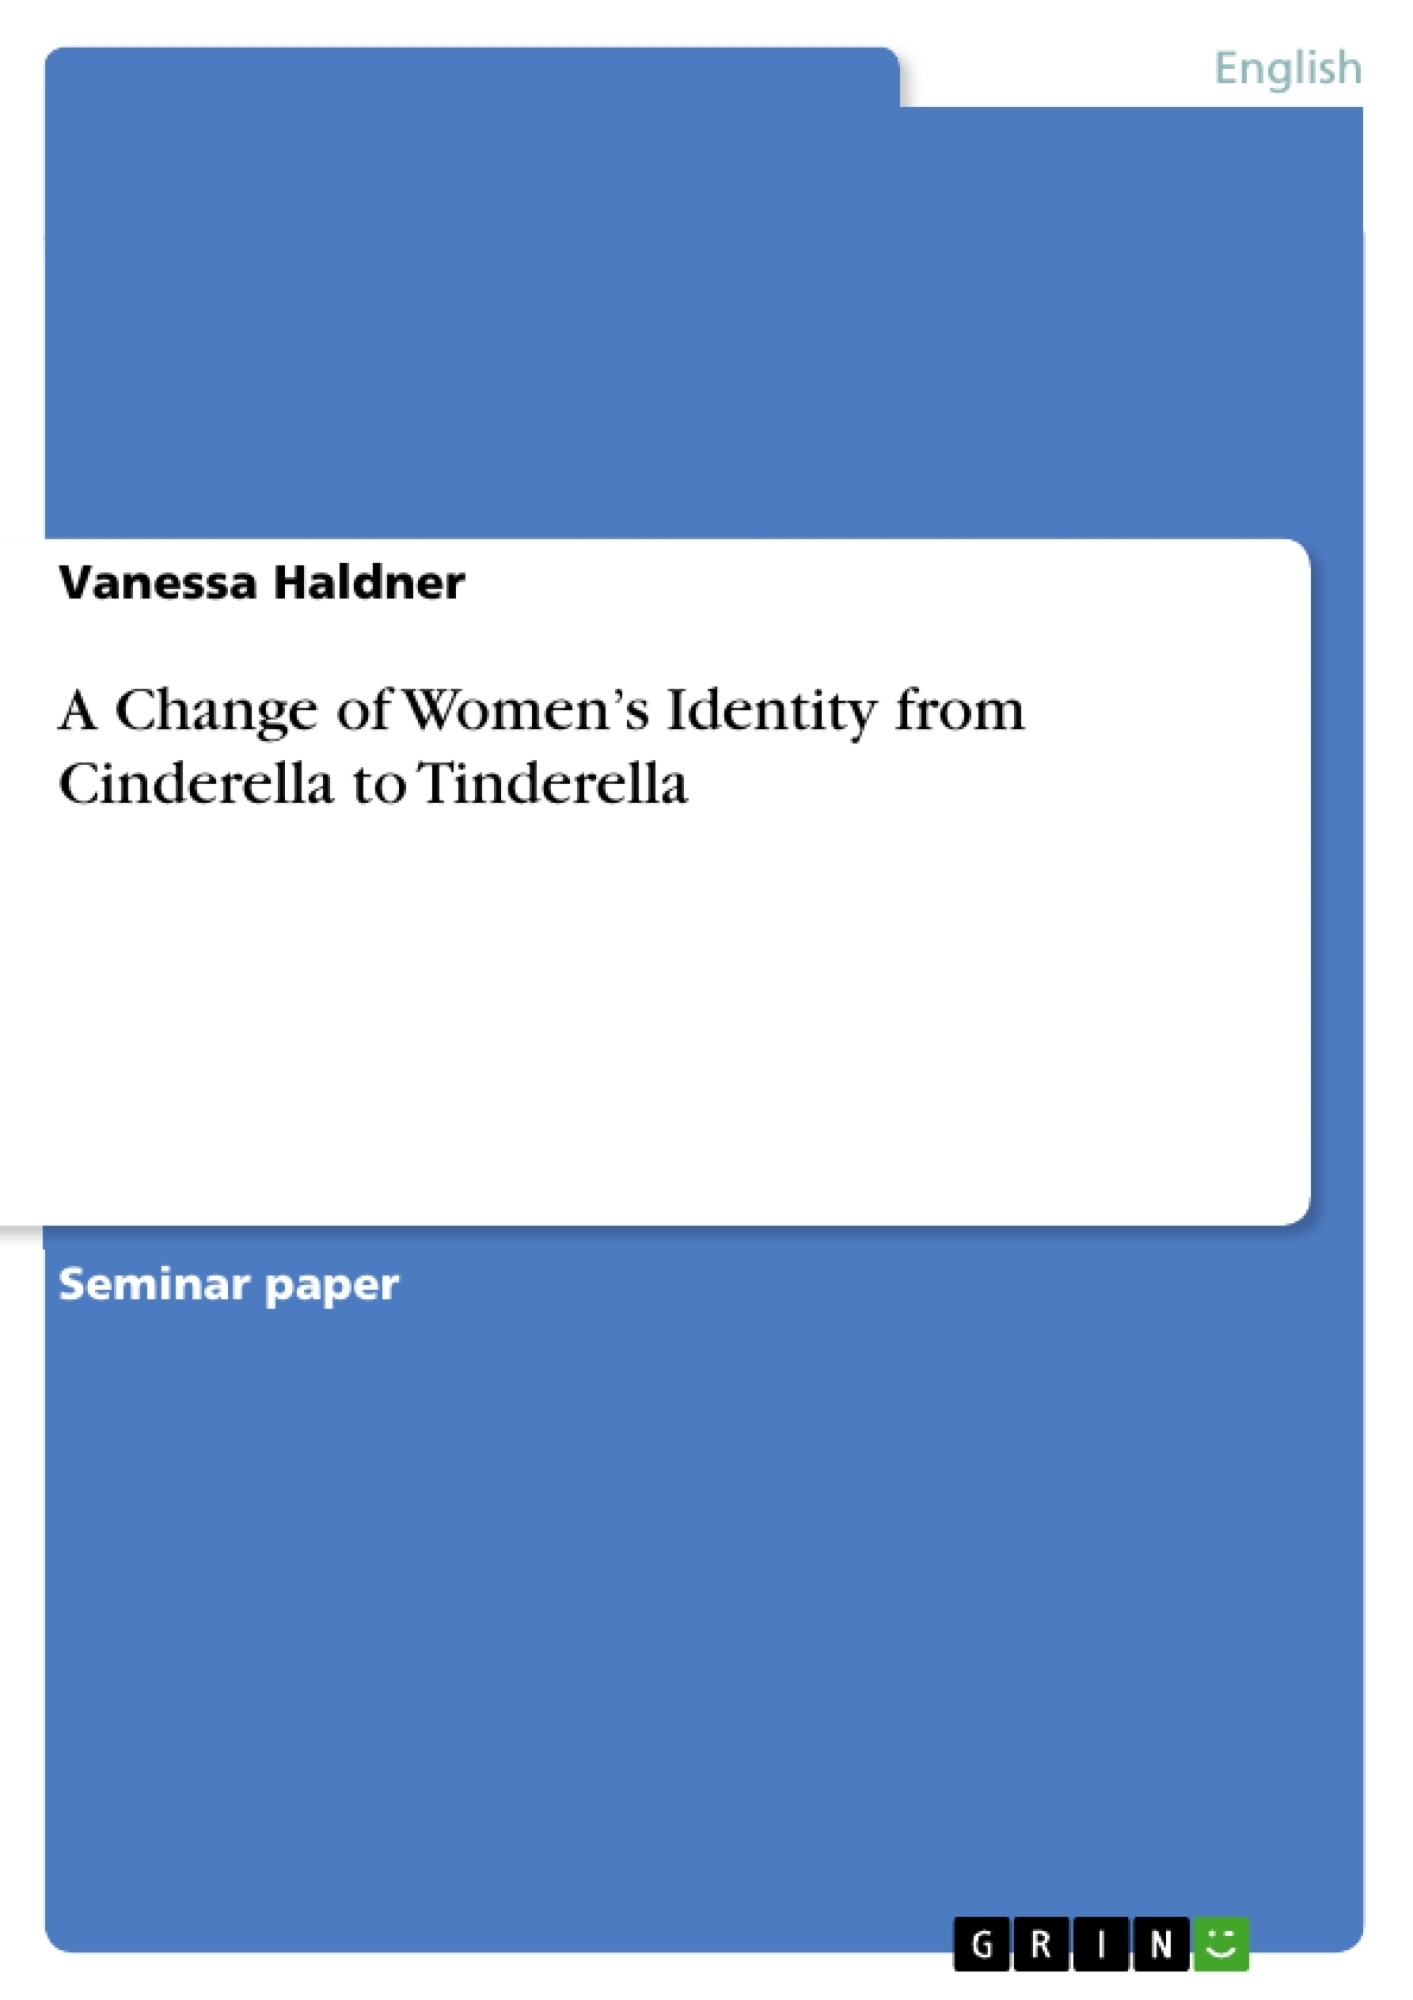 Title: A Change of Women's Identity from Cinderella to Tinderella